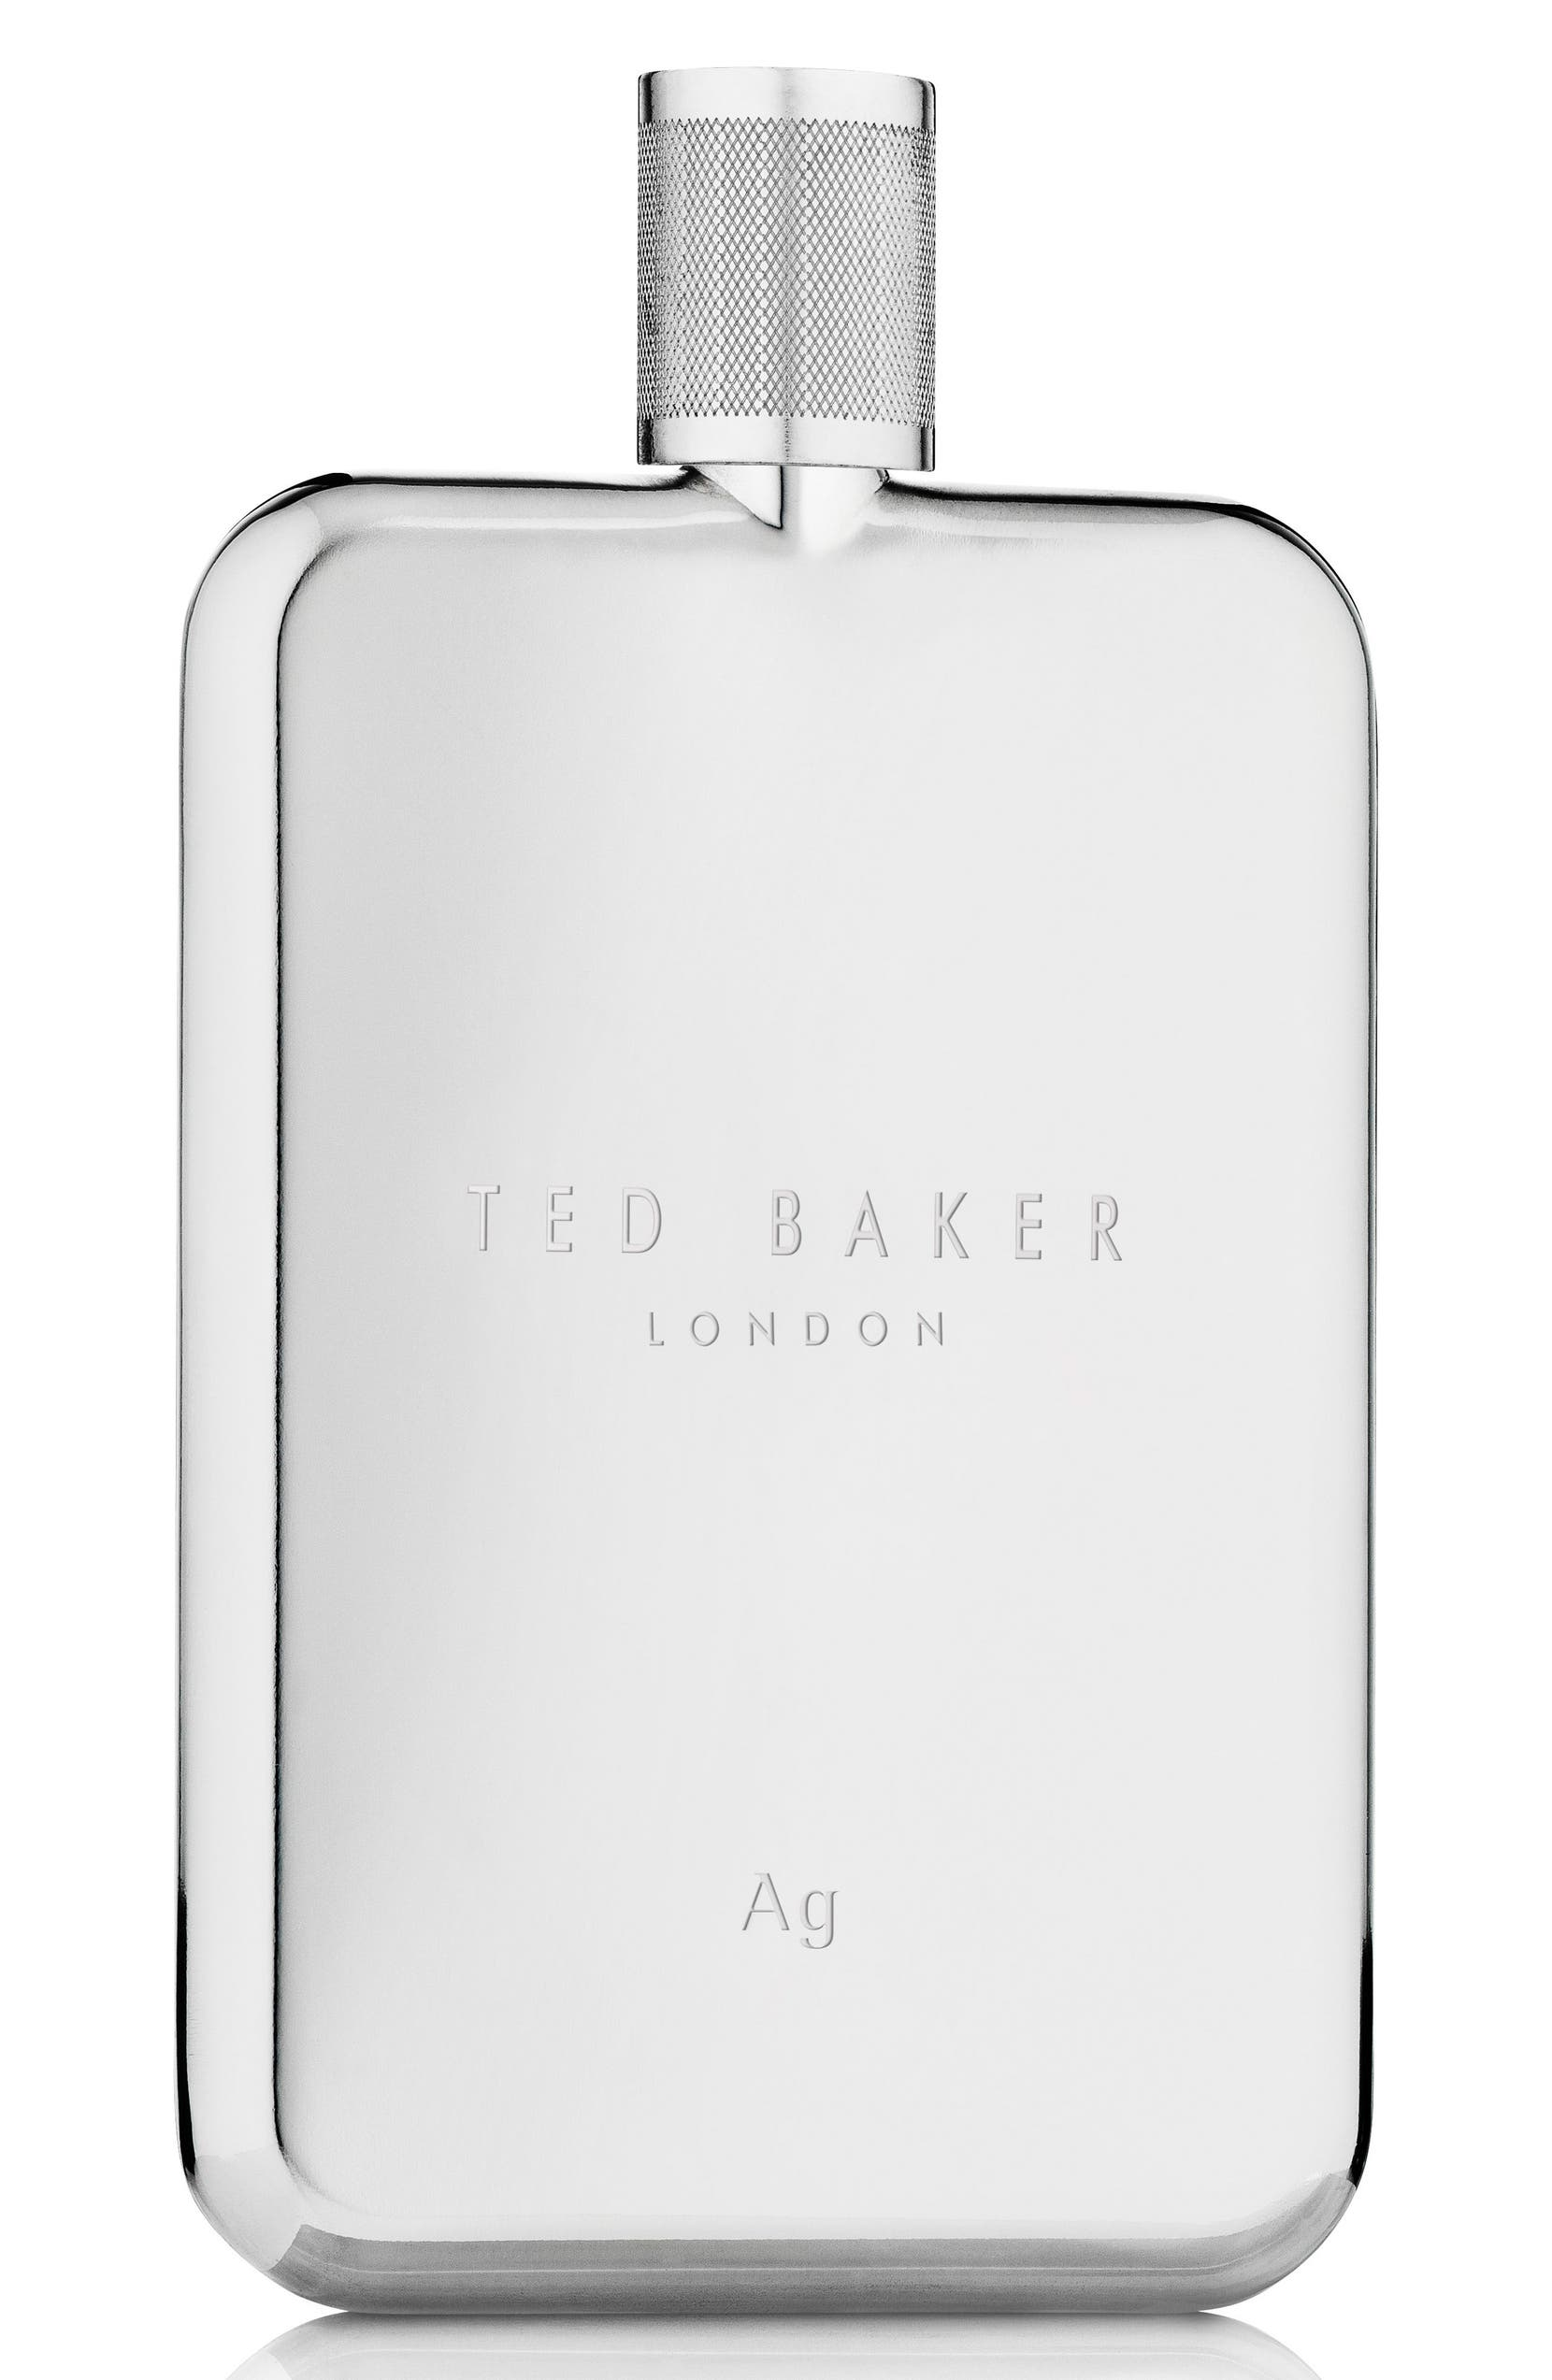 Ted Baker London Travel Tonic Ag Eau De Toilette Nordstrom